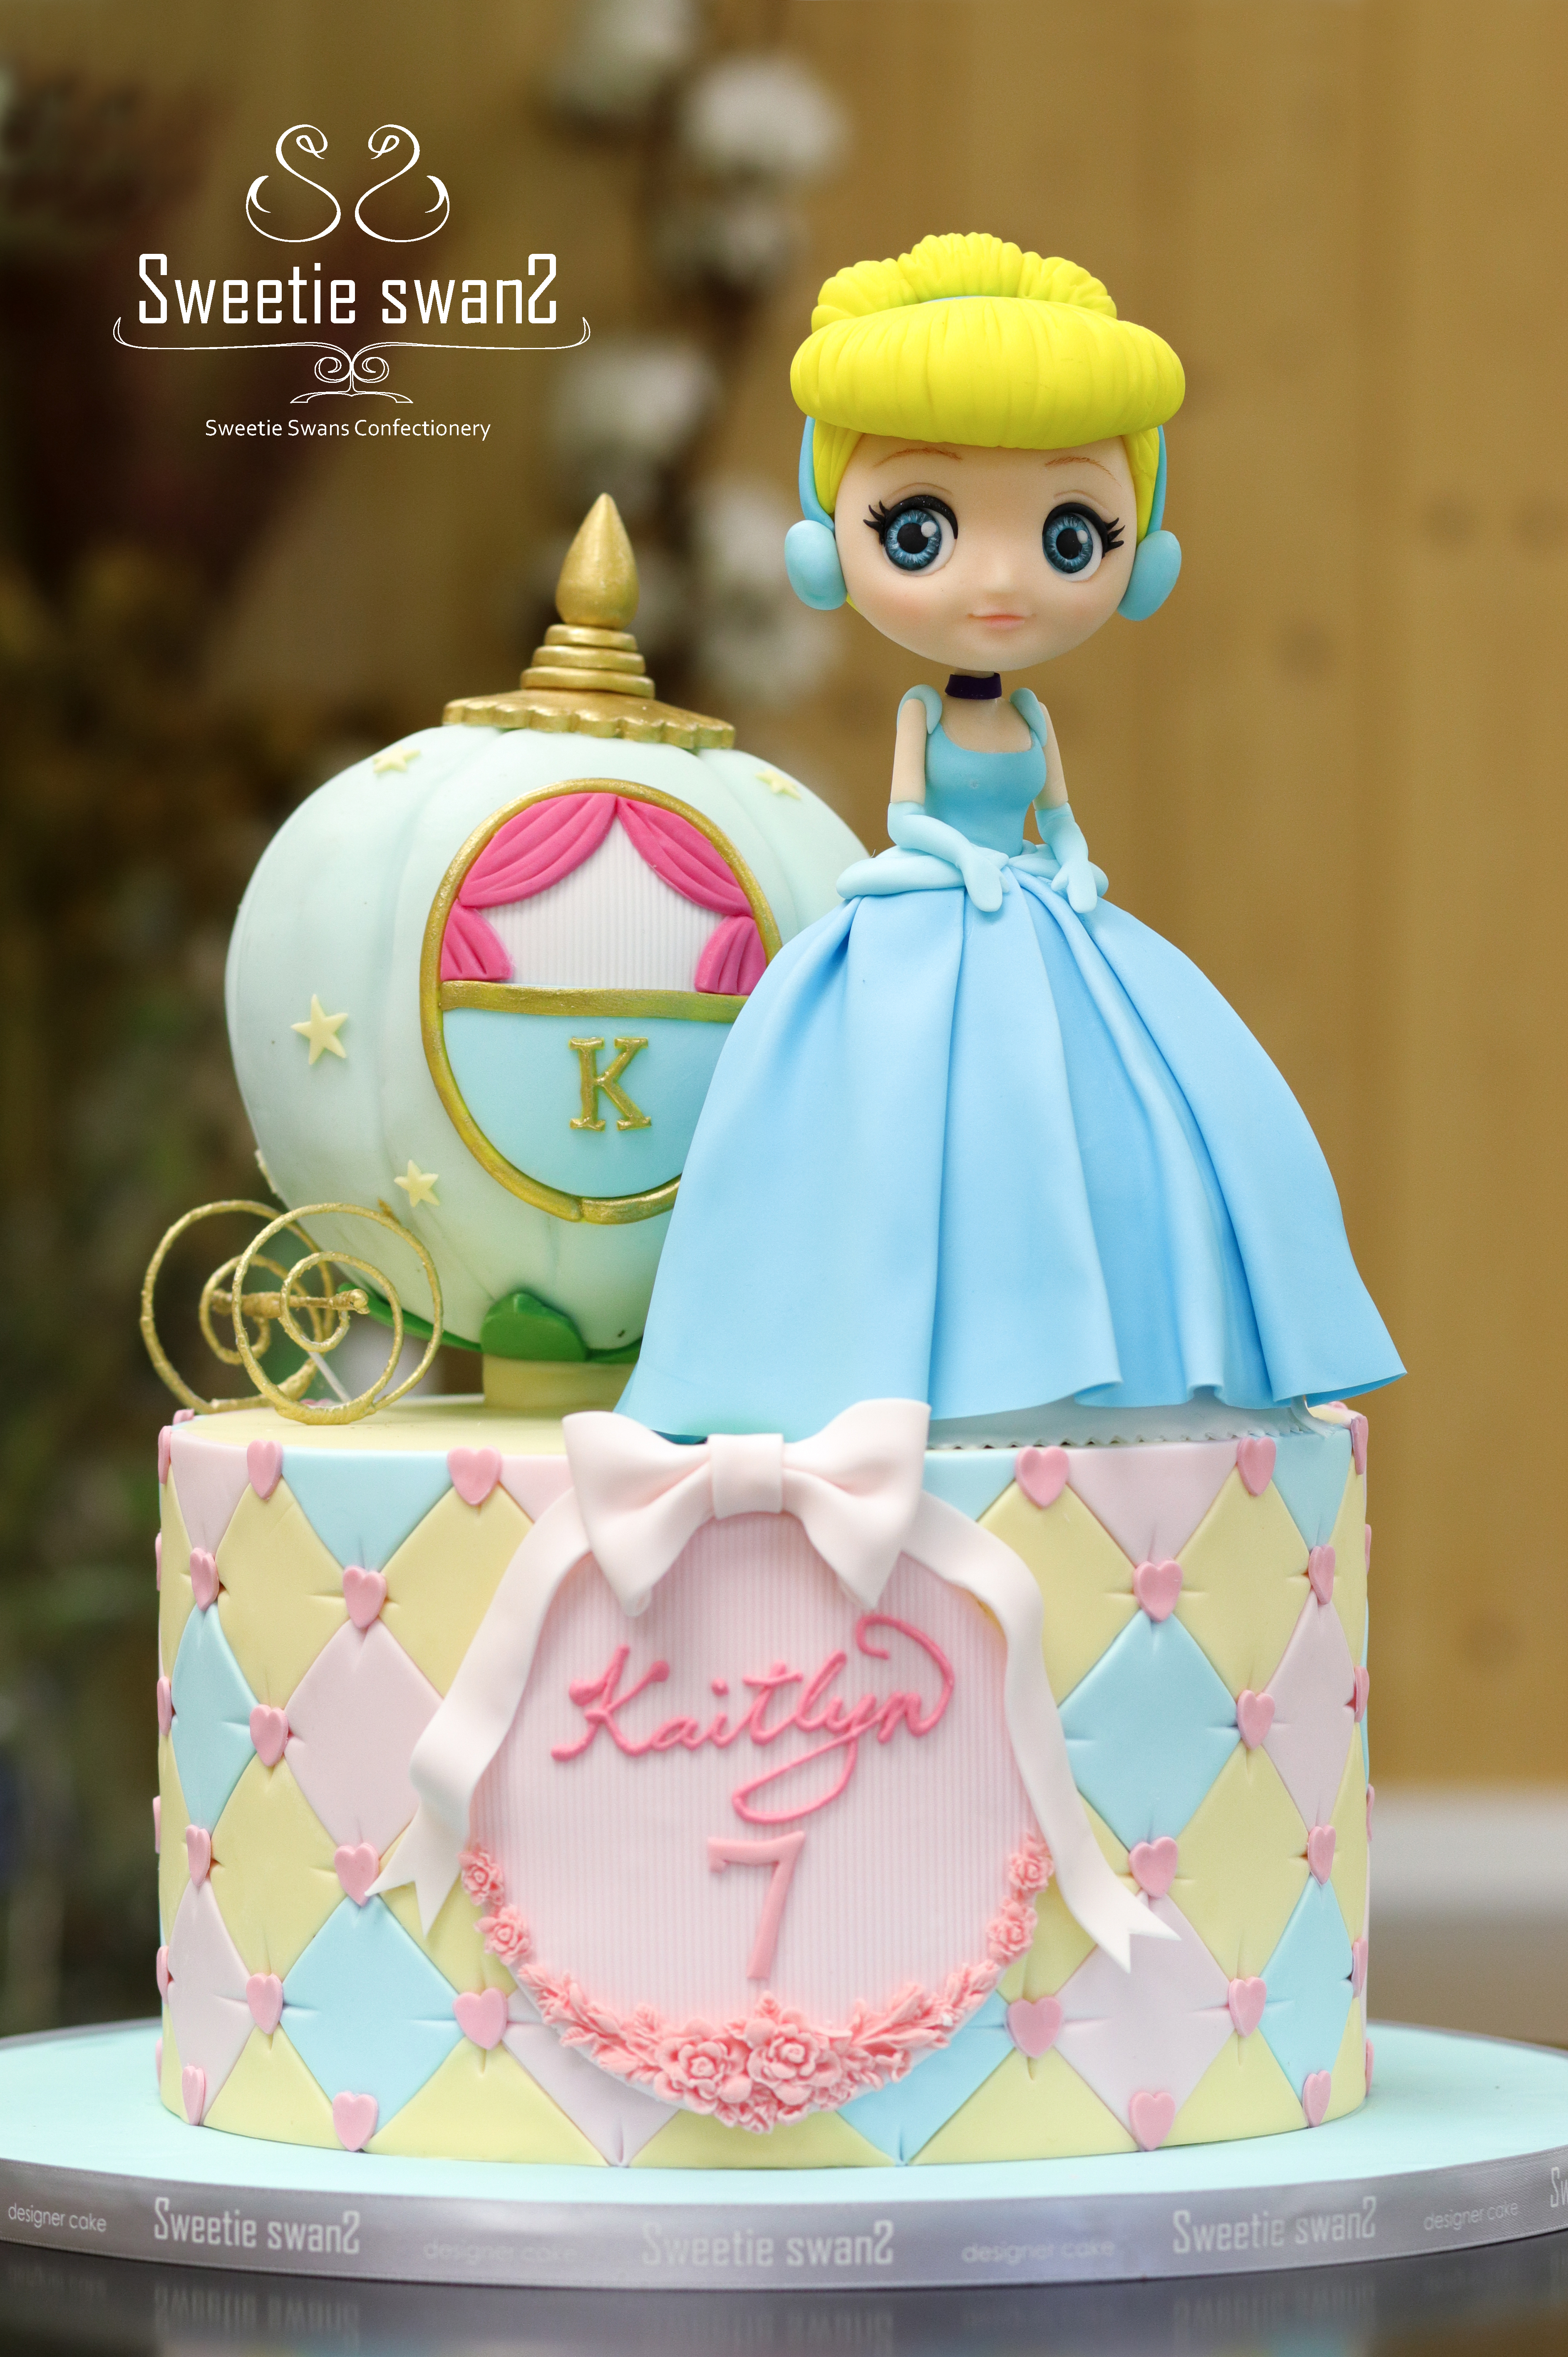 Cinderella cake for Kaitlyn-3